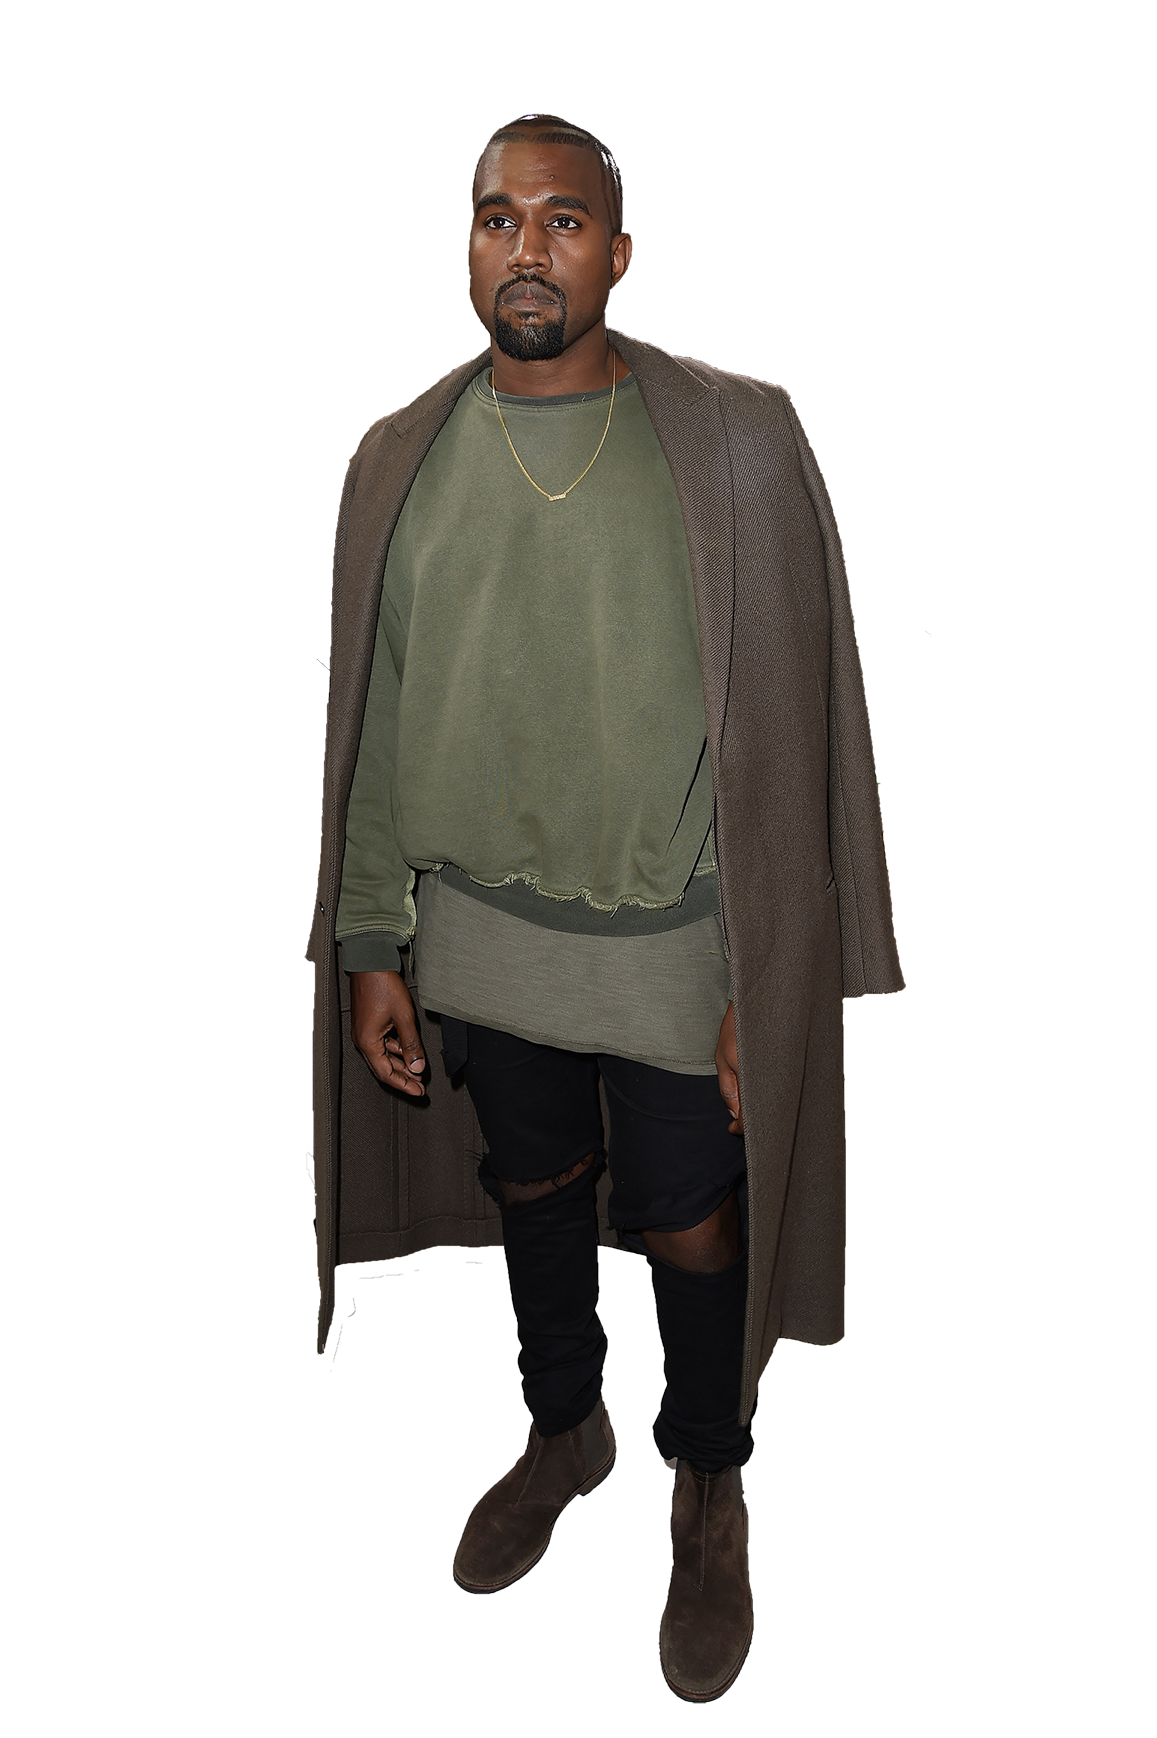 Kanye West Standing PNG Image